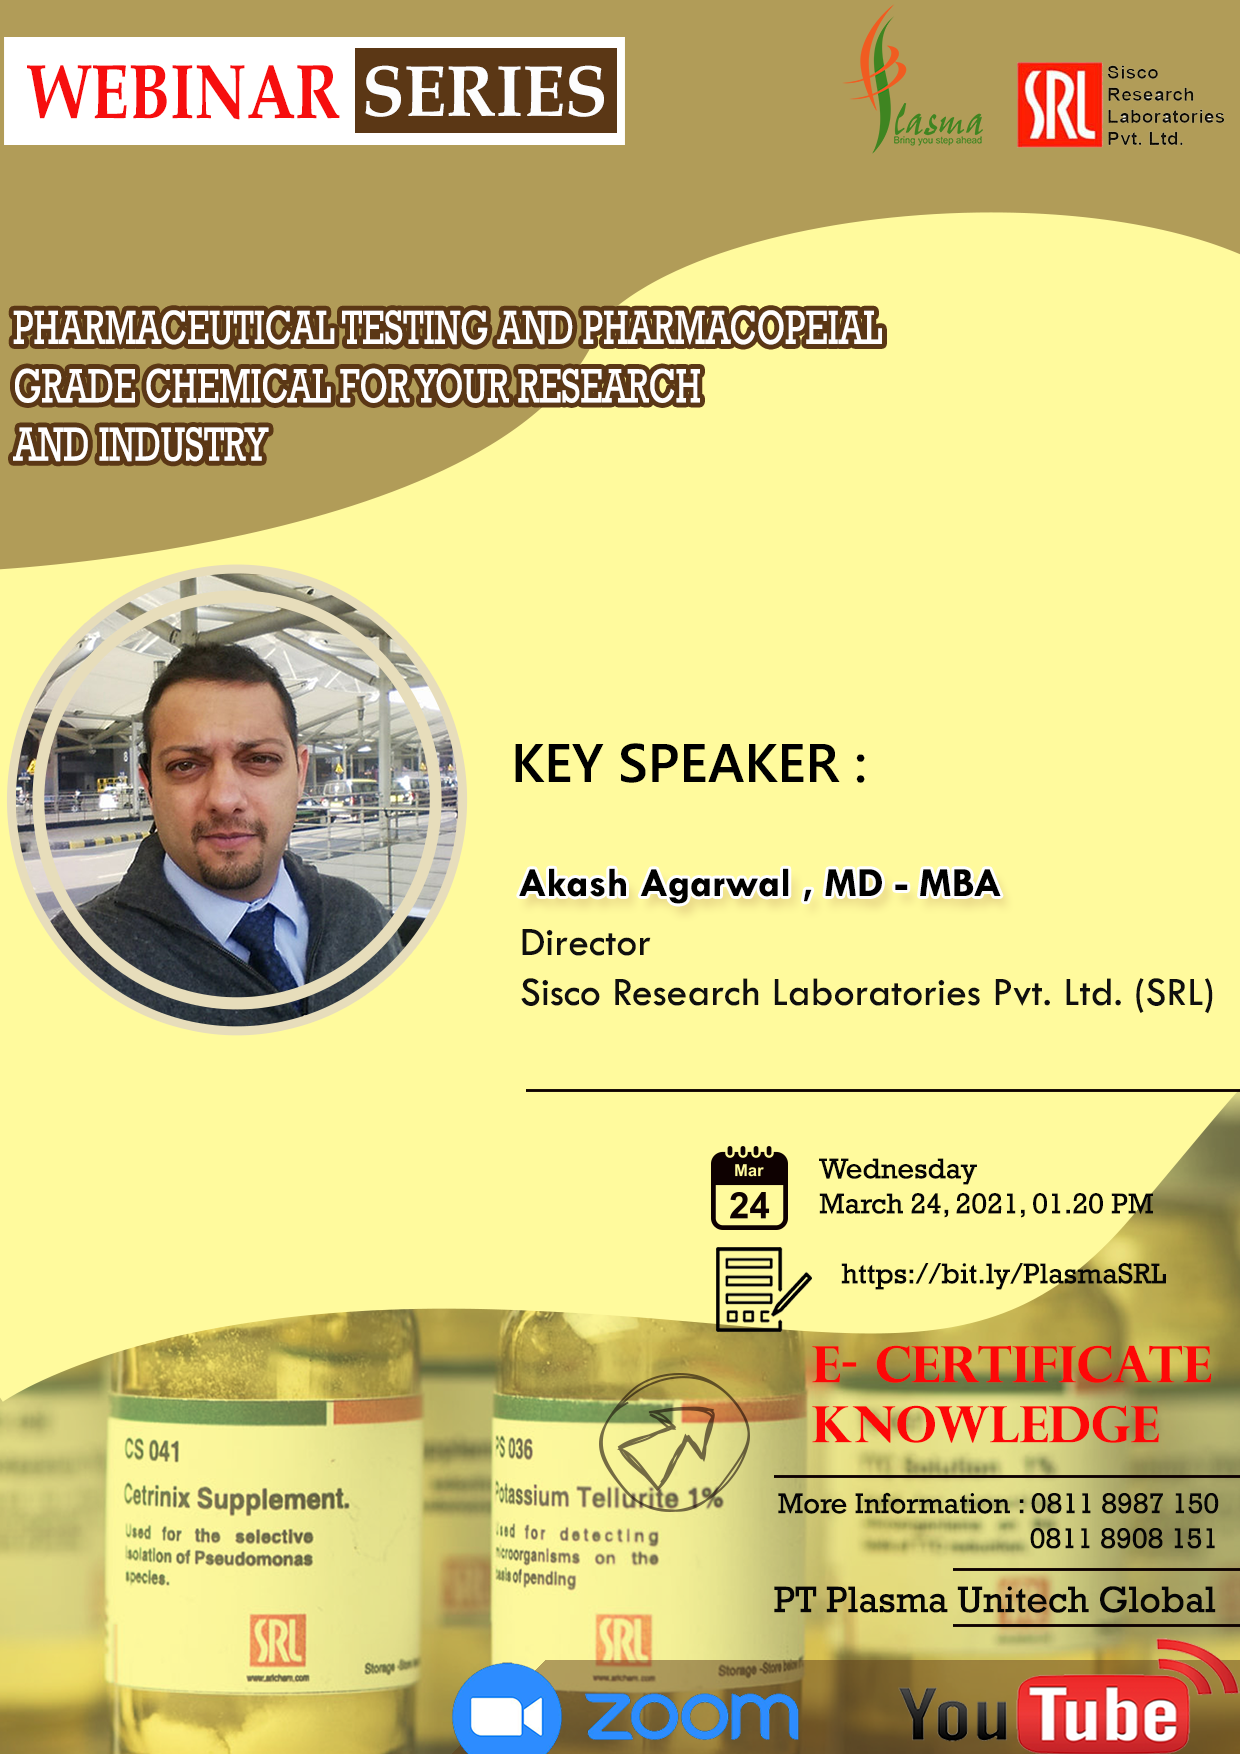 Webinar Pharmaceutical Testing and Pharmacopeial Grade Chemical for Your Research and Industry